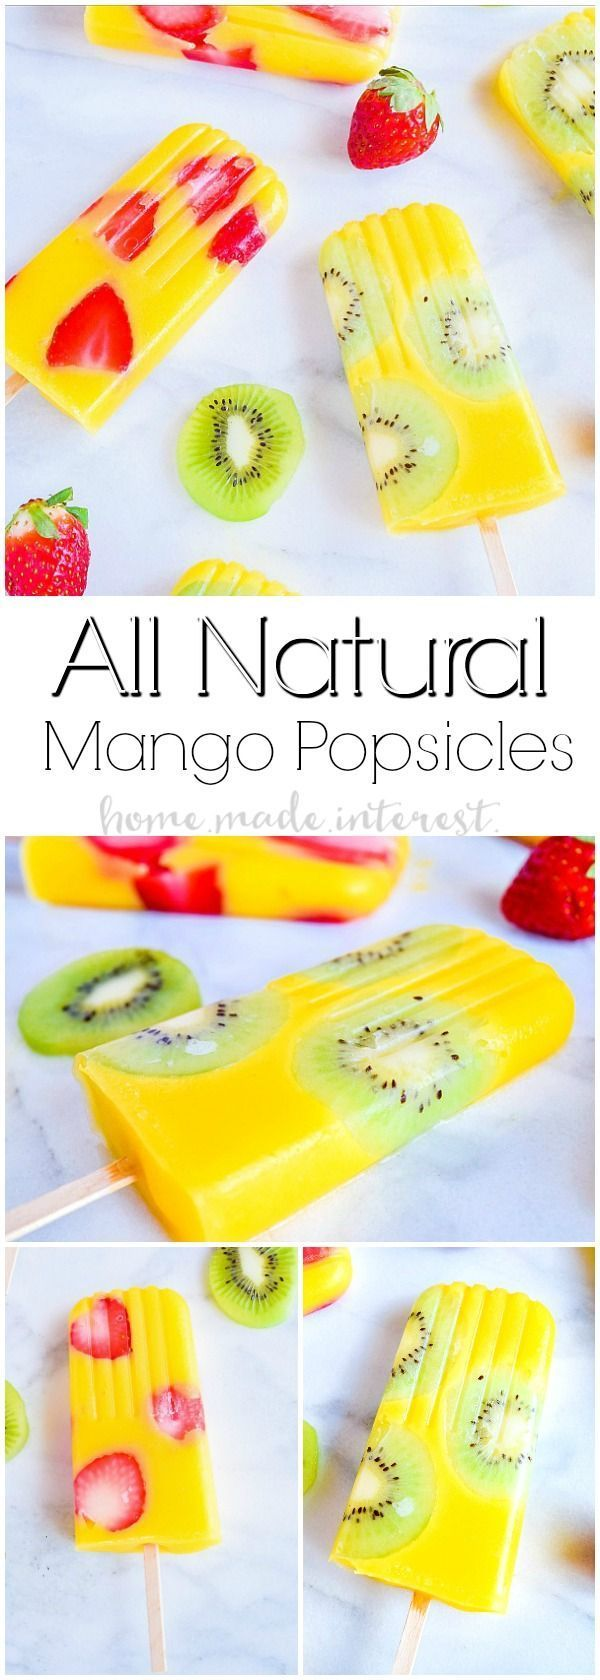 All Natural Mango Popsicles   Fruit popsicles are a great way to get your kids to eat more fruits and to stay hydrated in the summer. These all natural mango popsicles are mixed with kiwi and strawberry pieces for delicious no sugar added fruit popsicles. These beautiful mango kiwi popsicles and mango strawberry popsicles are going to be an awesome summer popsicle recipe for kids and adults! #BritaStream #ad